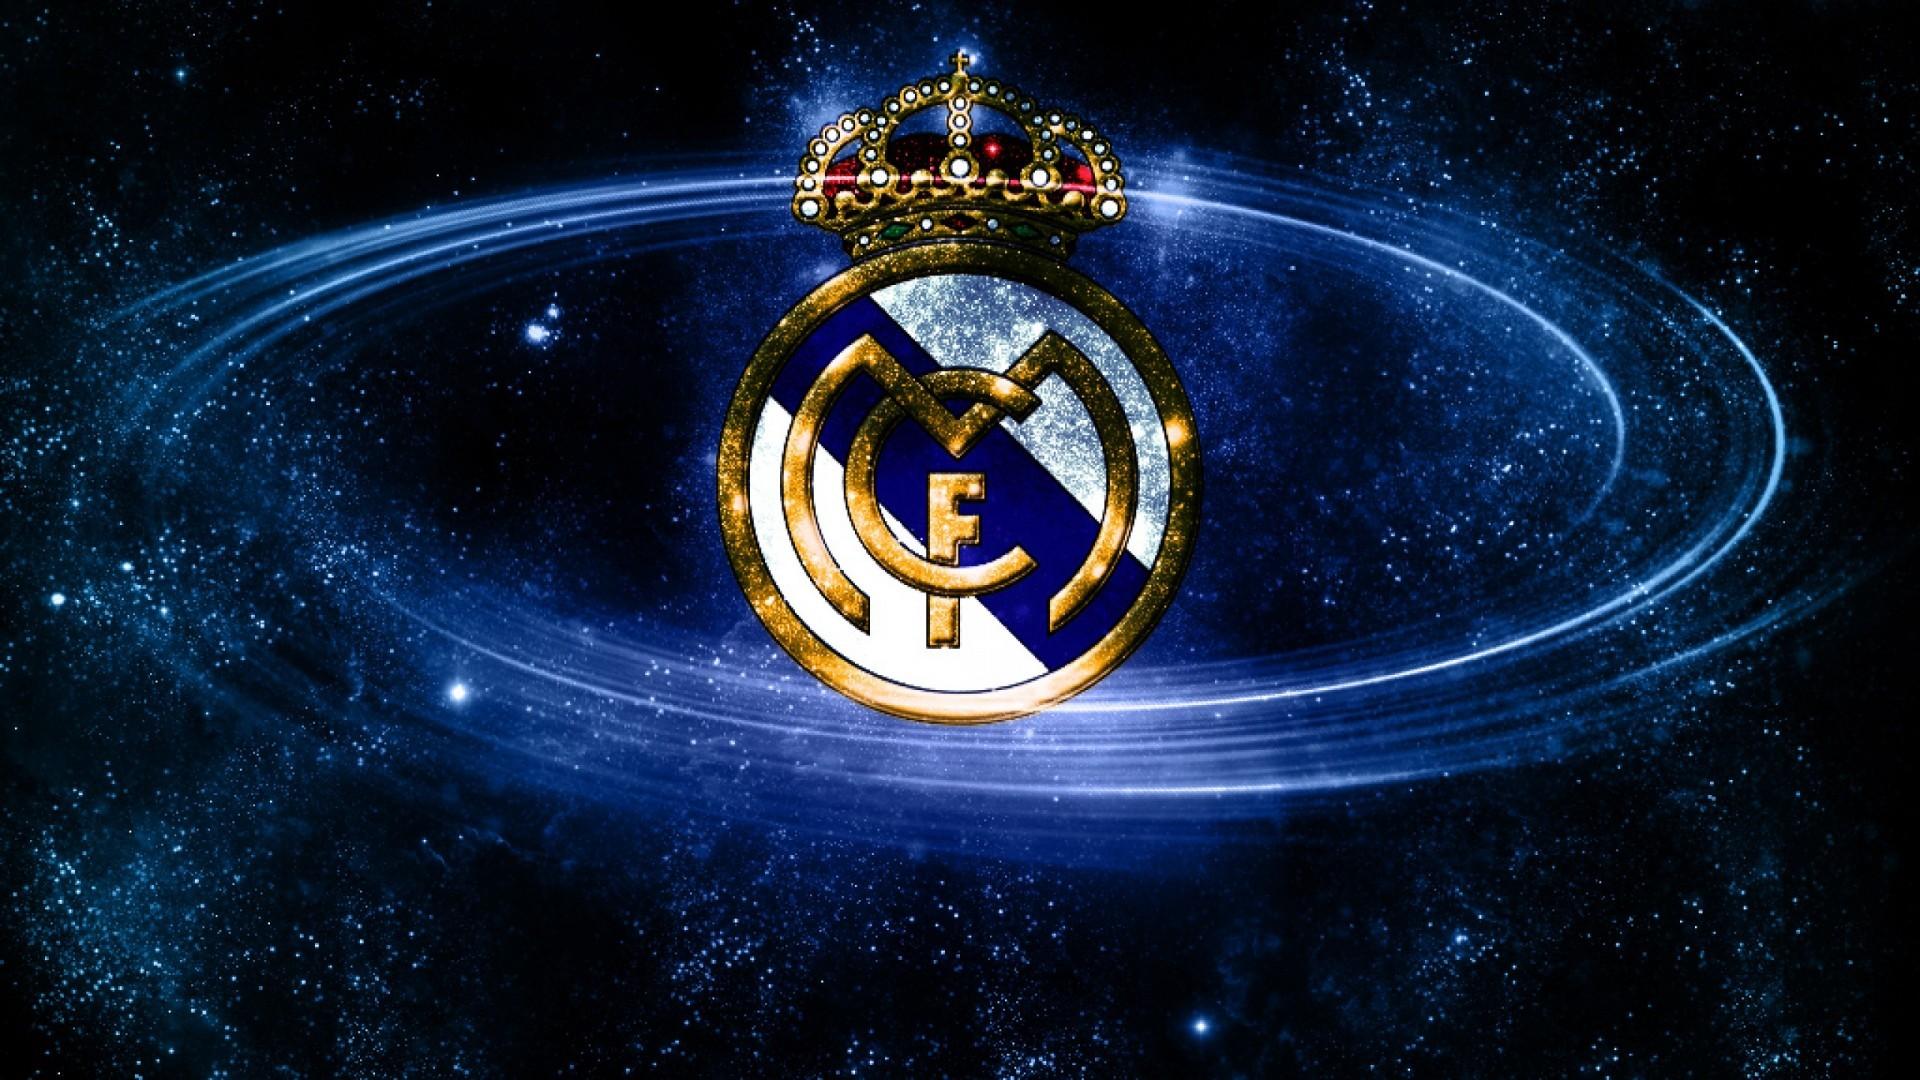 1920x1080 Download Fullsize Image · Real Madrid HD Logo Cool Soccer Wallpapers